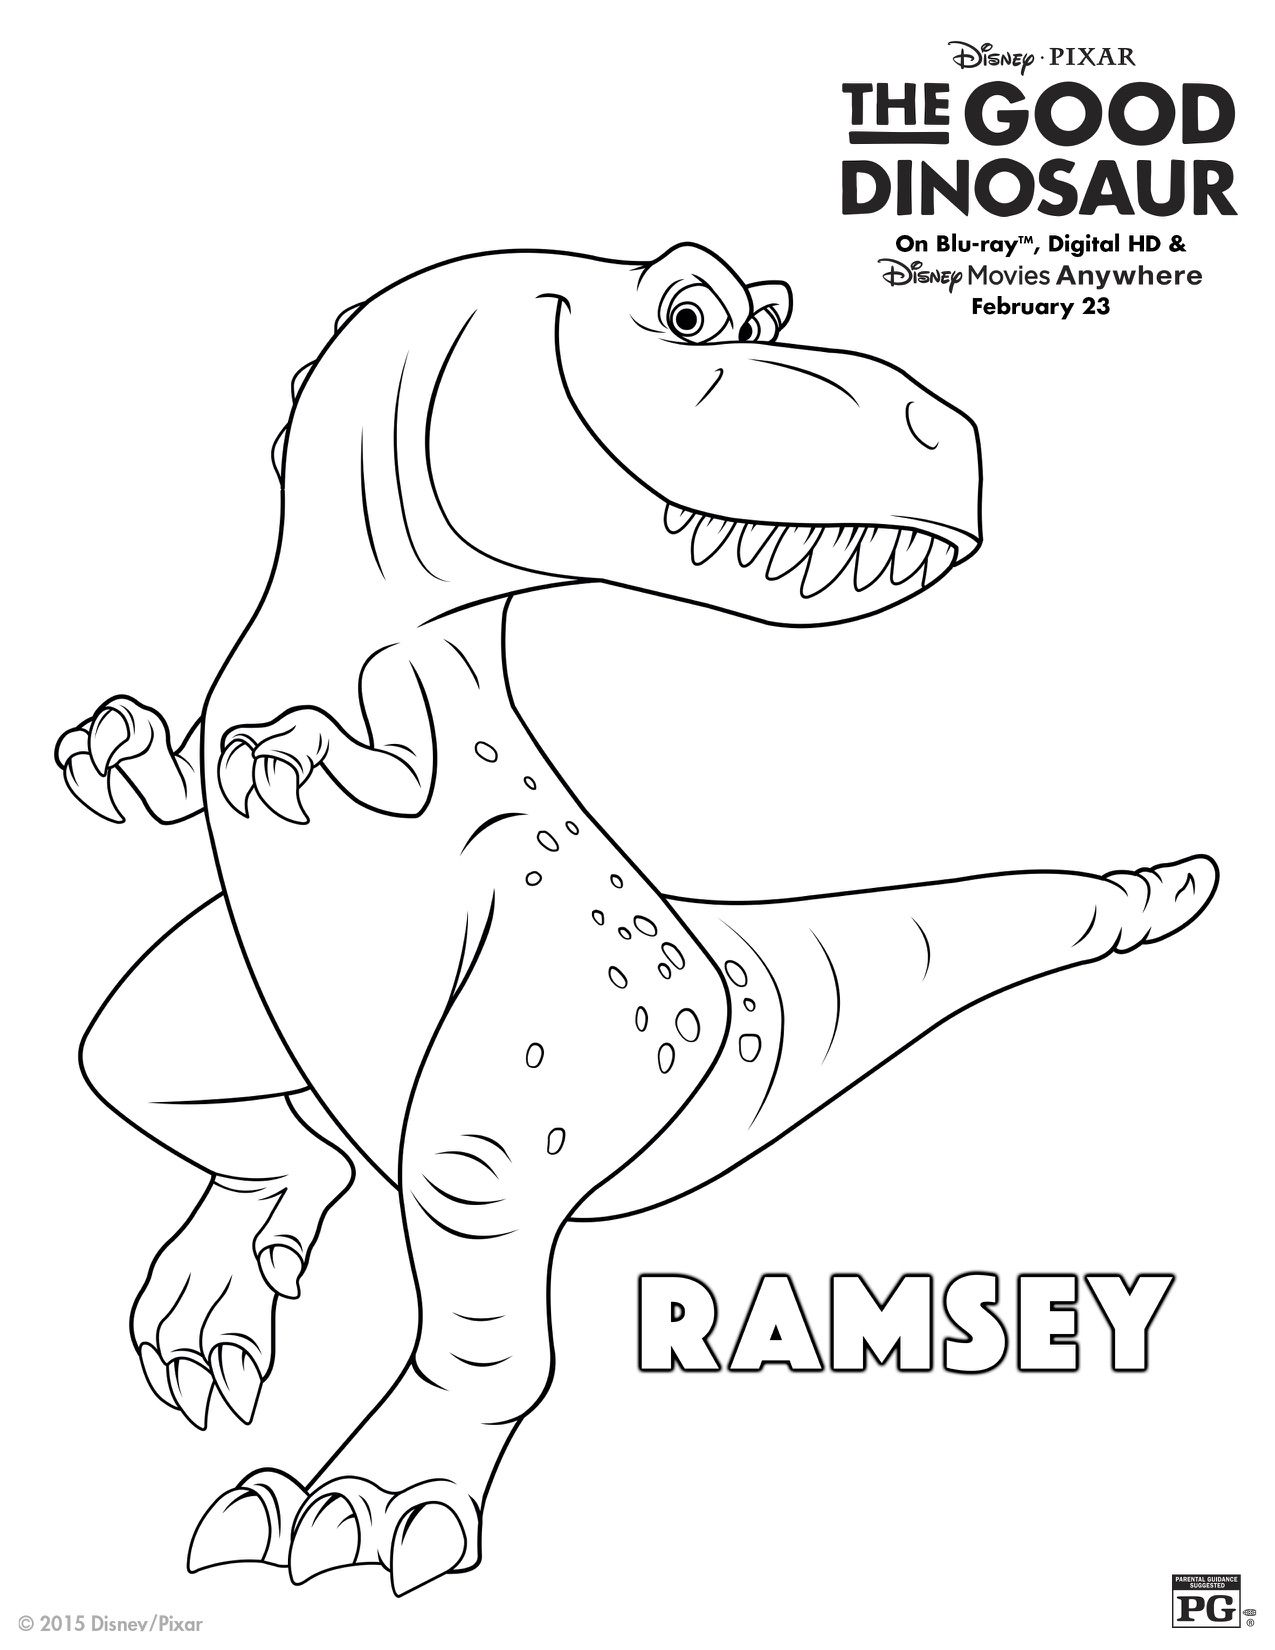 Disney The Good Dinosaur Ramsey Coloring Page | Printable Coloring ...